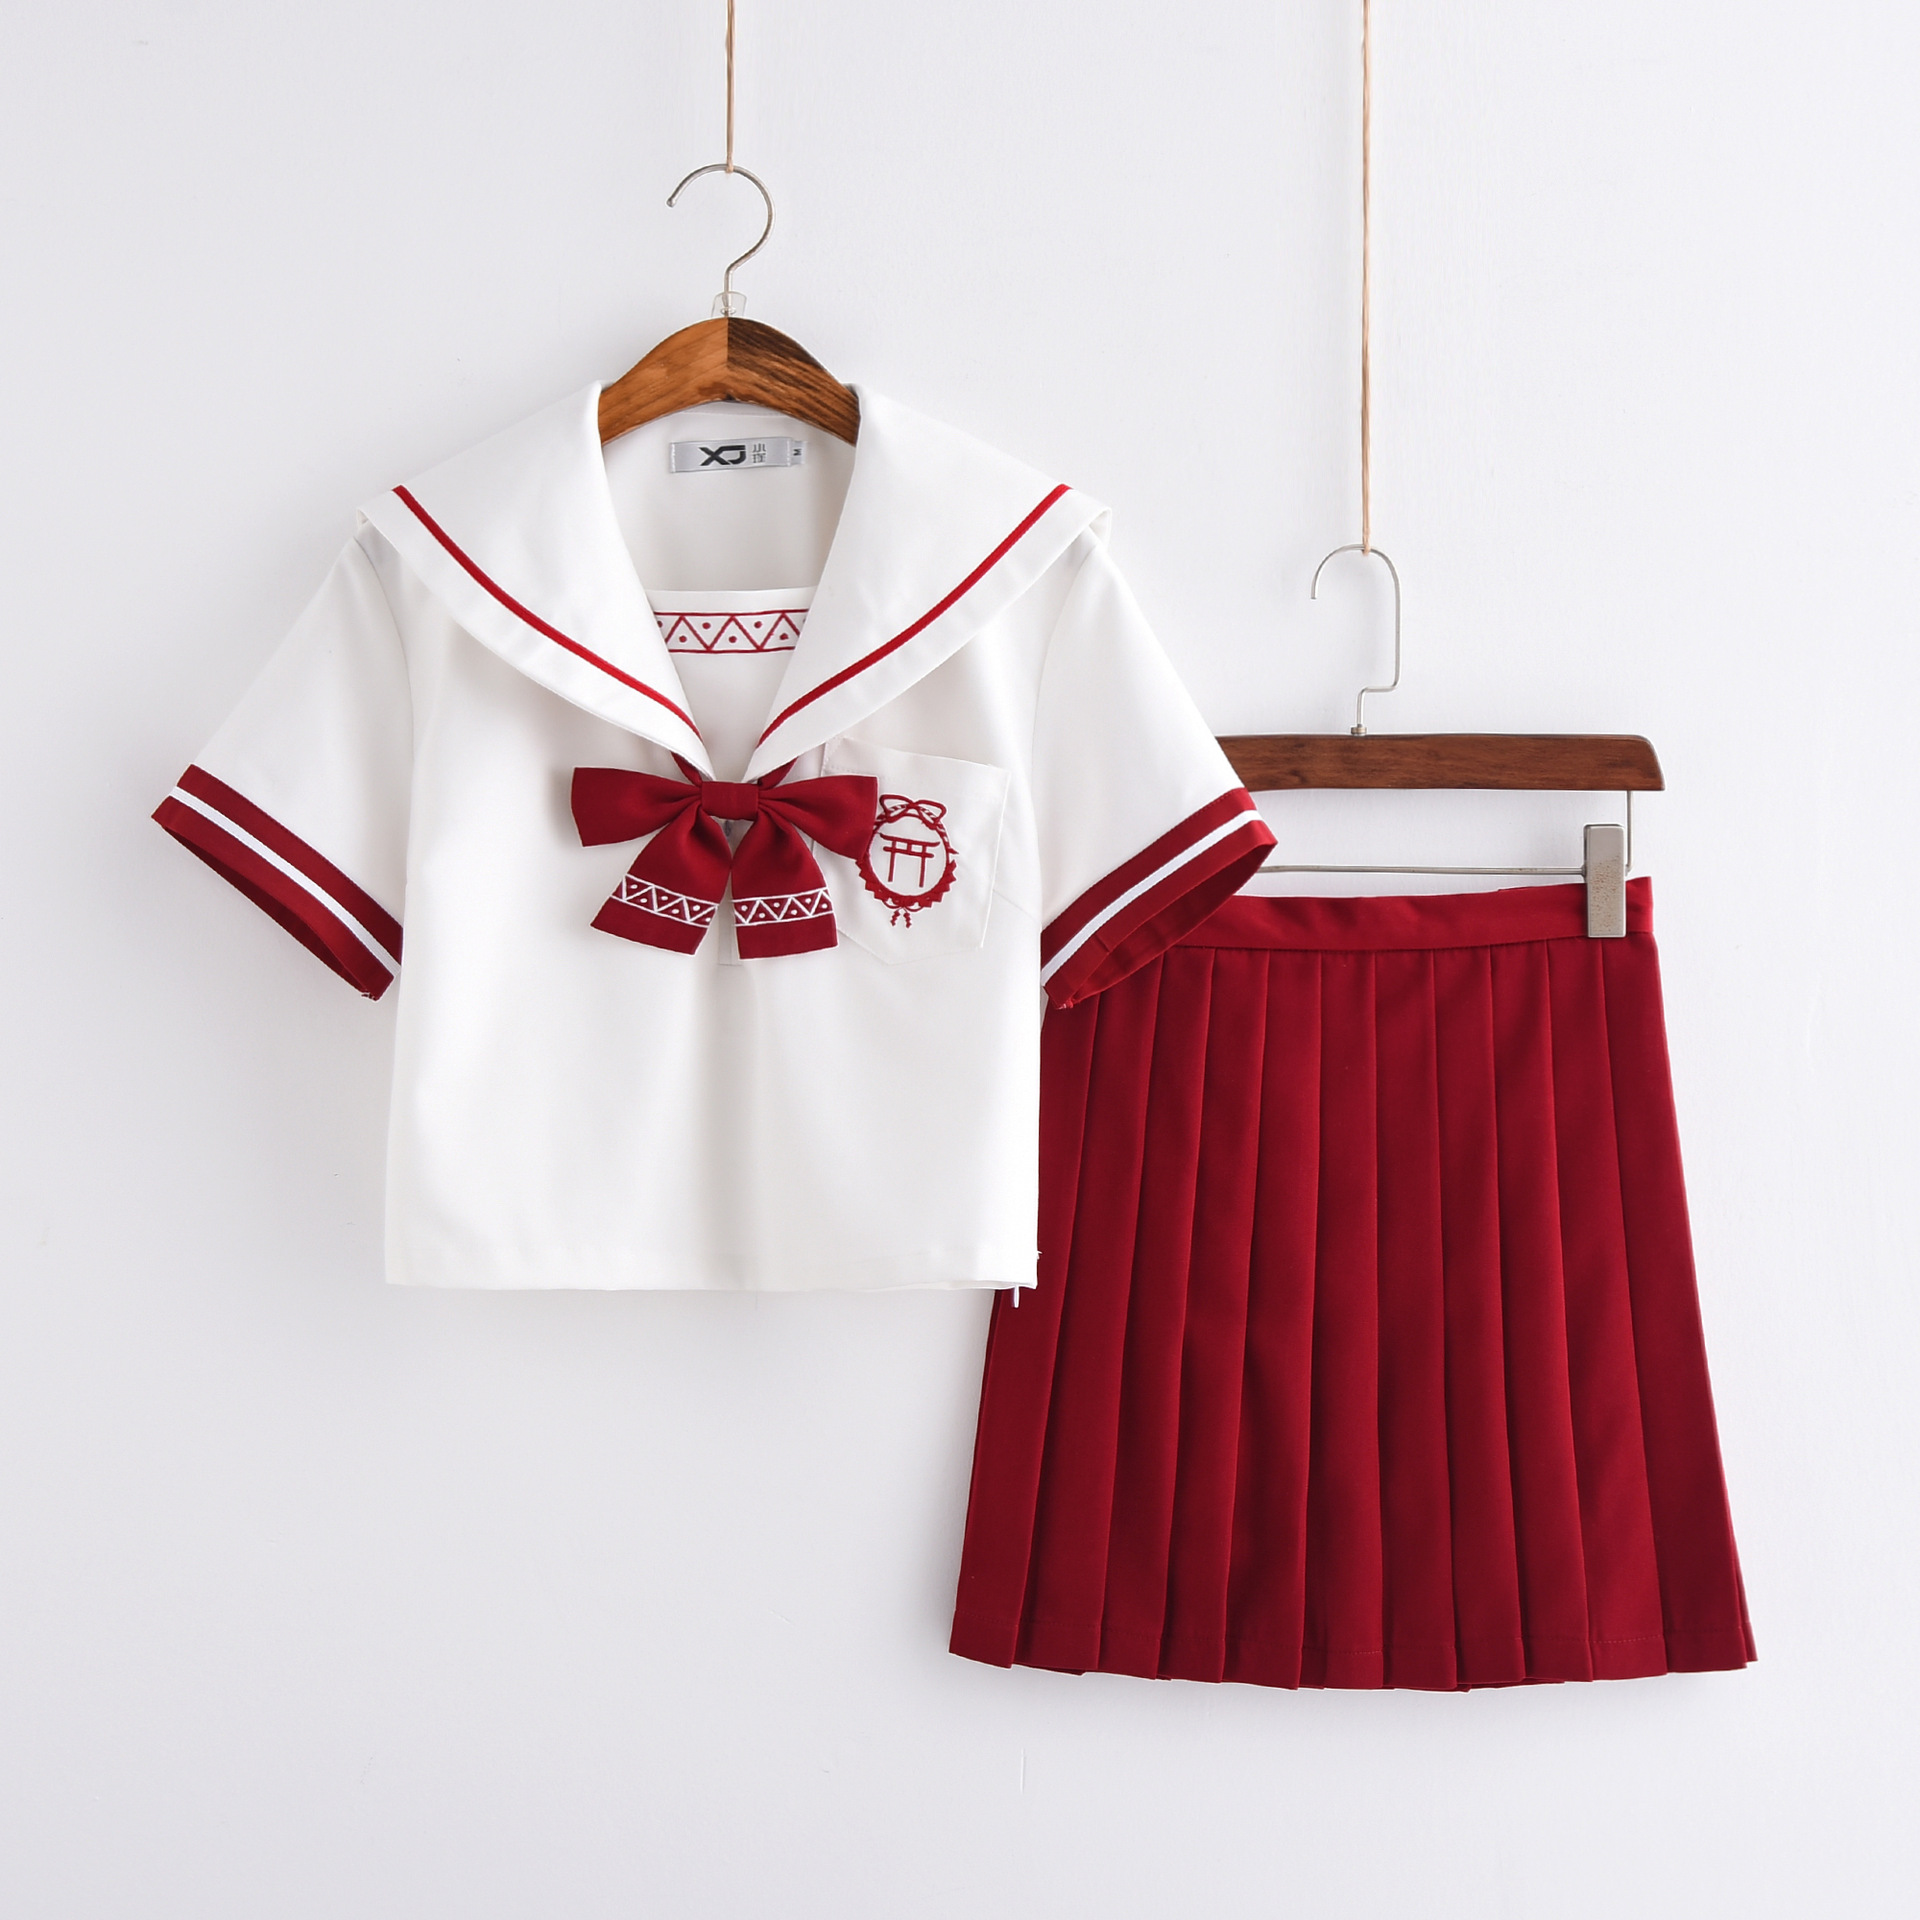 Lovely Girl Jk School Uniform Fresh Color Japanese Cosplay Short Sleeved Sailors Suit Student College Clothes Tops Pleated Skirt